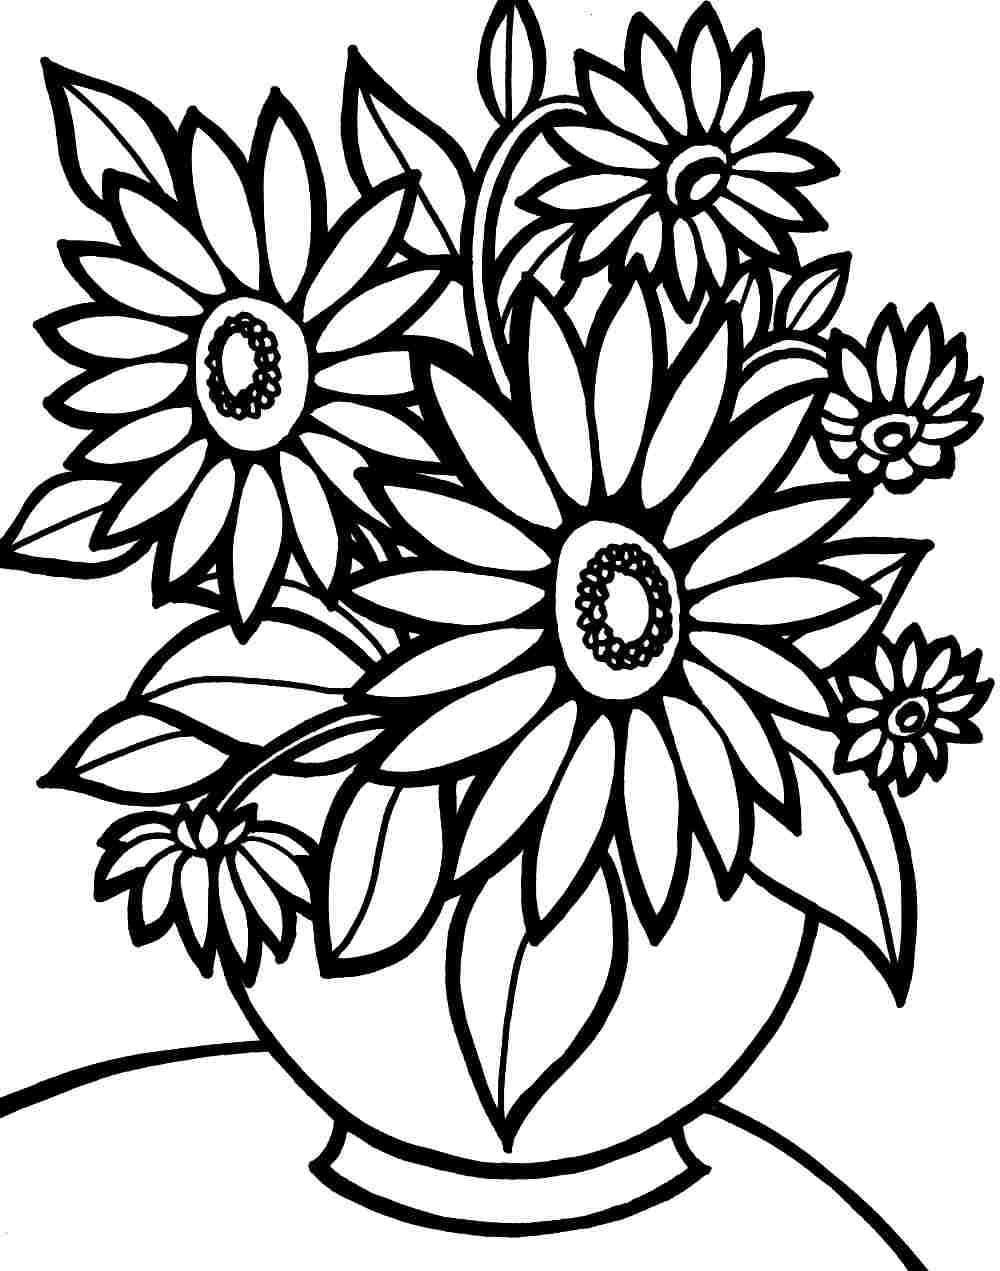 Coloring Page Of A Flower Youngandtae Com In 2020 Printable Flower Coloring Pages Easy Coloring Pages Flower Coloring Sheets